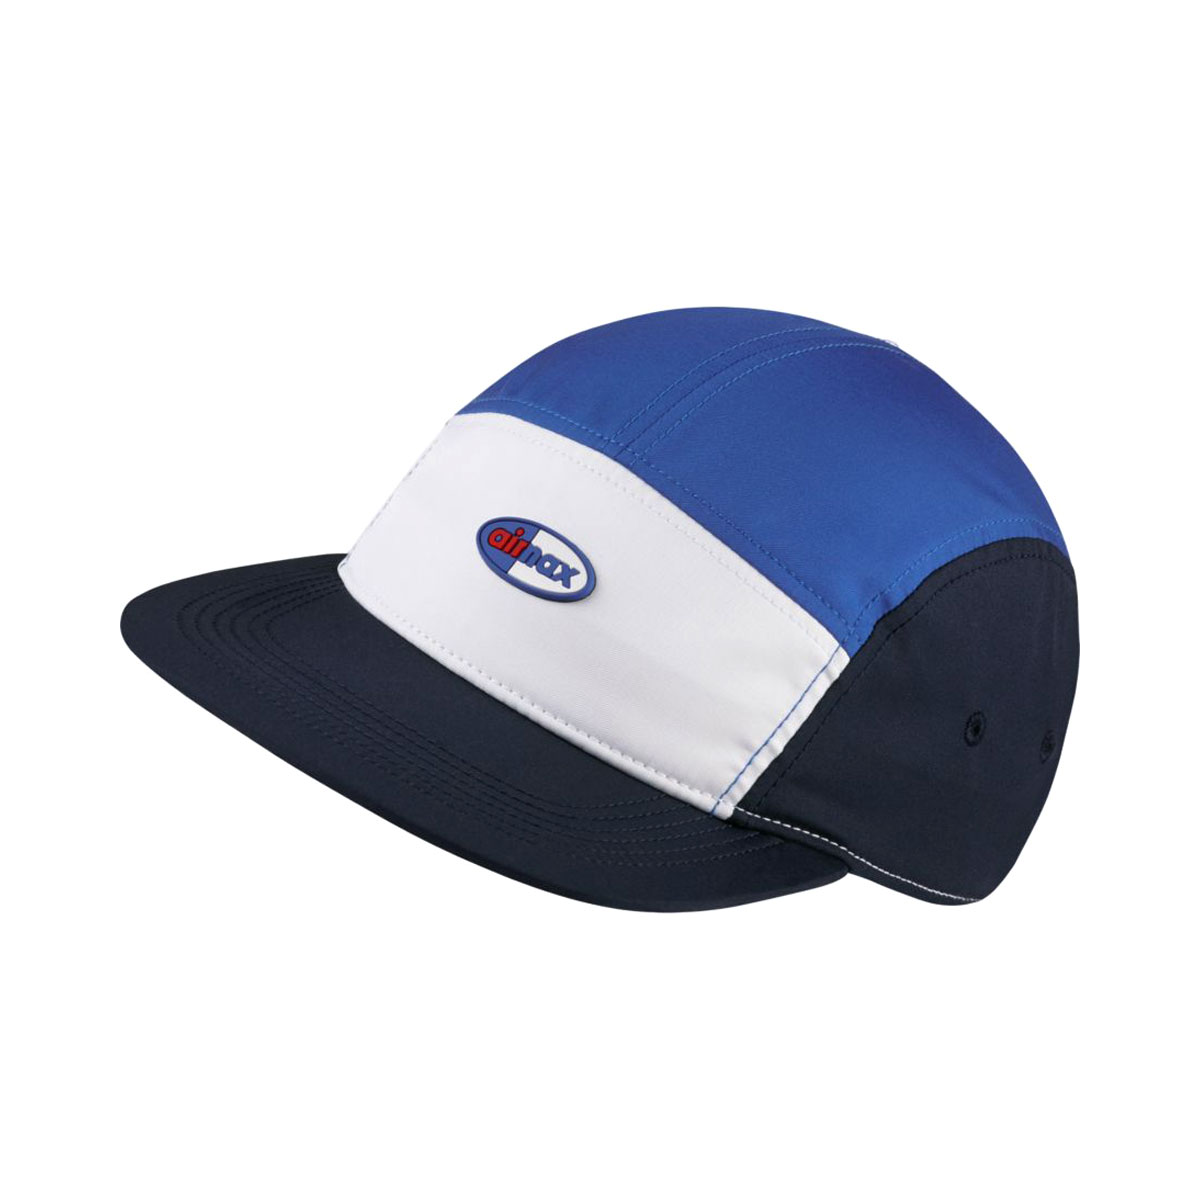 A jet cap of the taffeta (100% of polyester) material adoption. It is AIR  MAX logo at the front desk. 0d8b8764a17